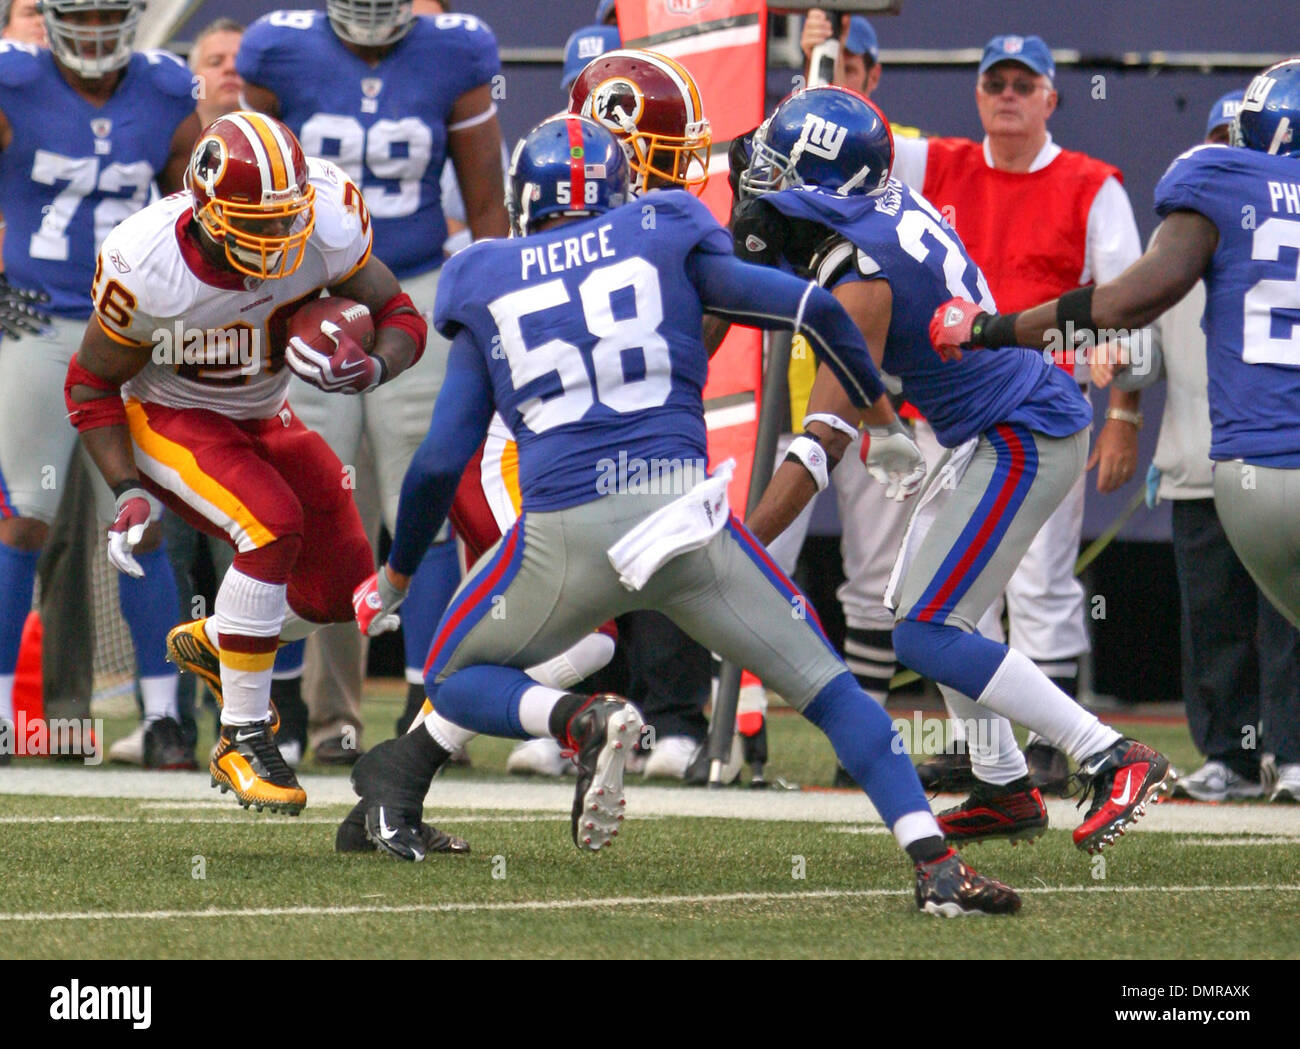 Redskins #26 Clinton Portis and NY's #58 Antonio Pierce. The New York Giants defeated the Washington Redskins 23-17 at Giants Stadium in Rutherford, New Jersey. (Credit Image: © Anthony Gruppuso/Southcreek Global/ZUMApress.com) - Stock Image